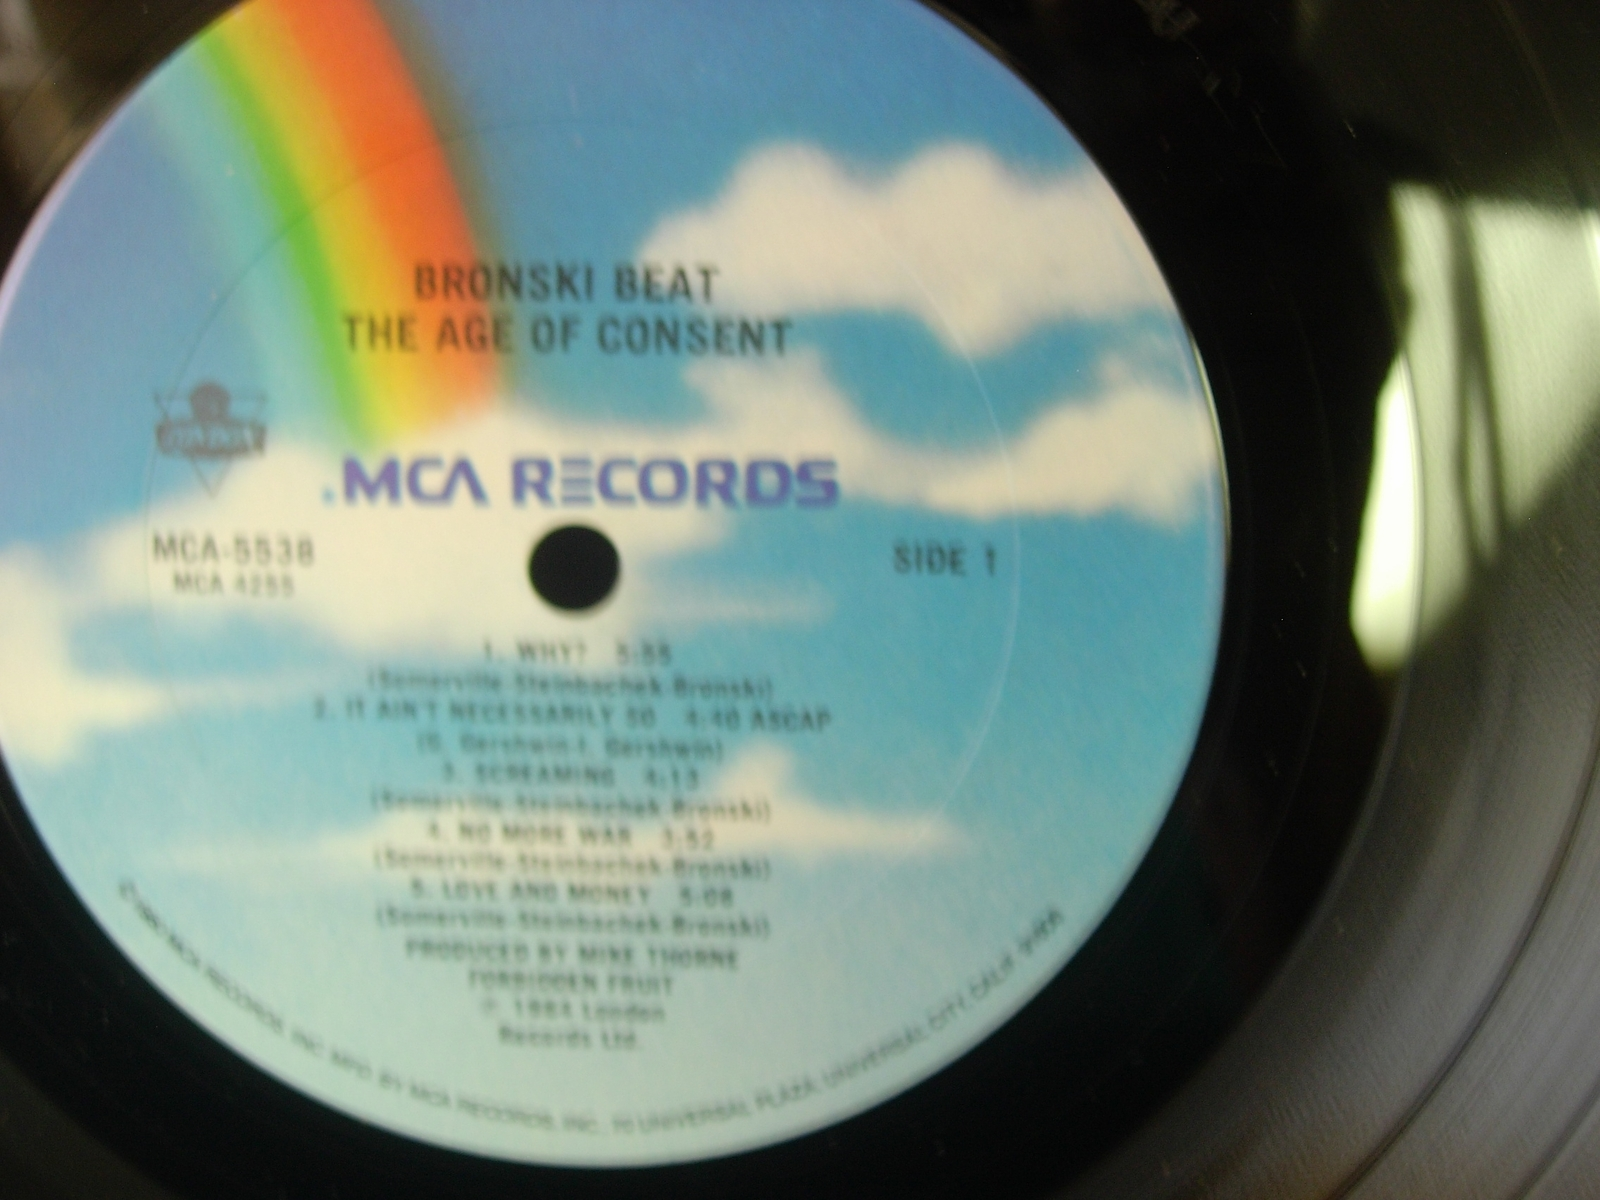 Bronski Beat - The Age of Consent - MCA 5538